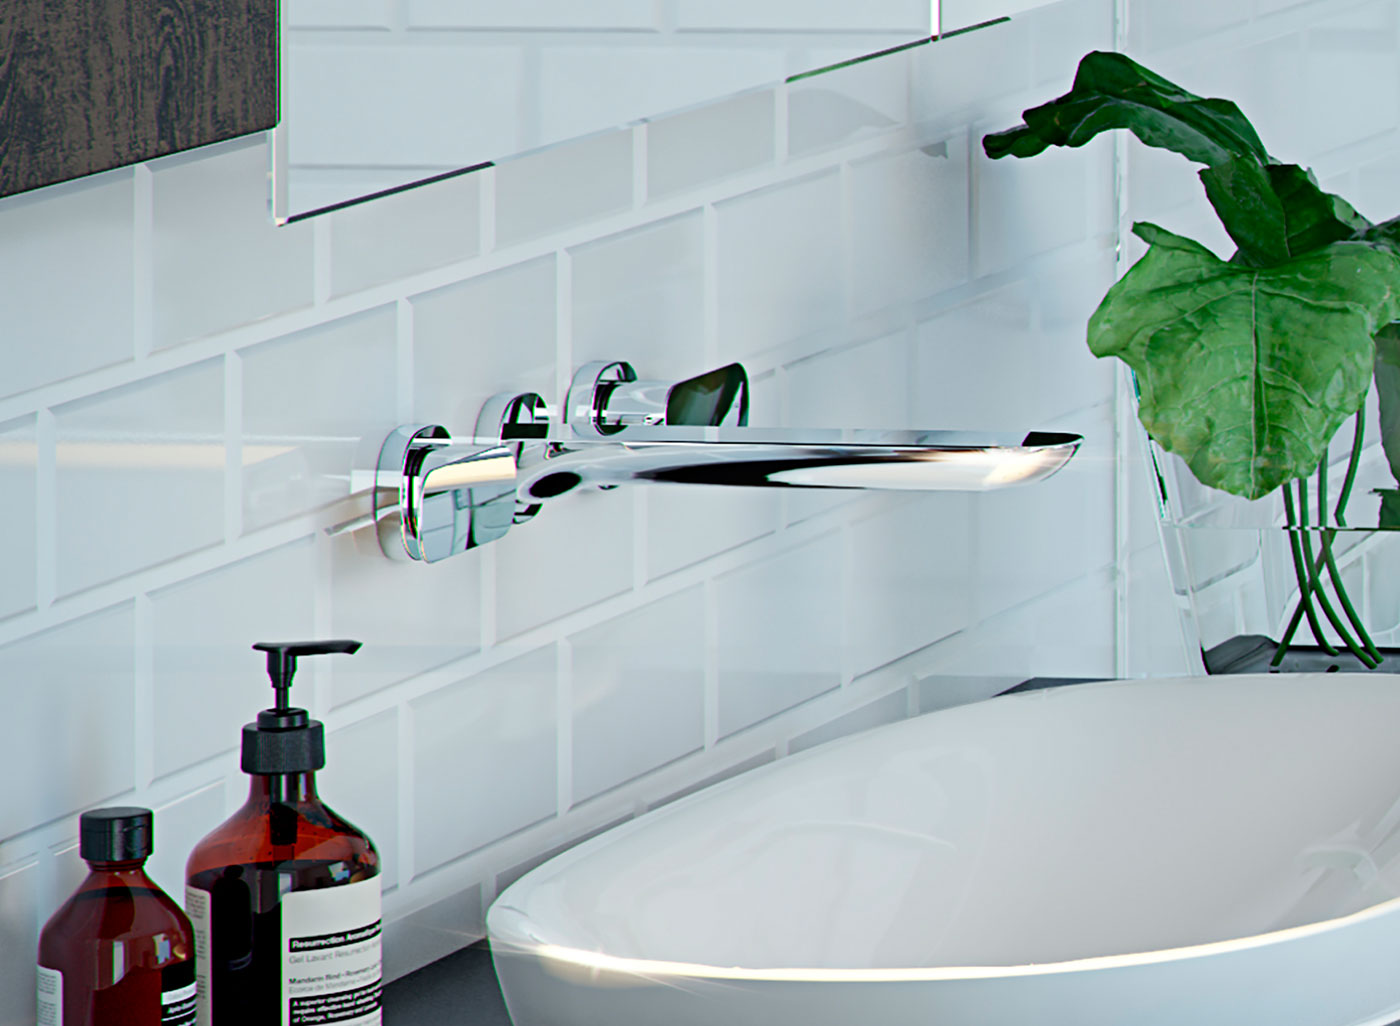 Contura tapware is meticulously detailed and